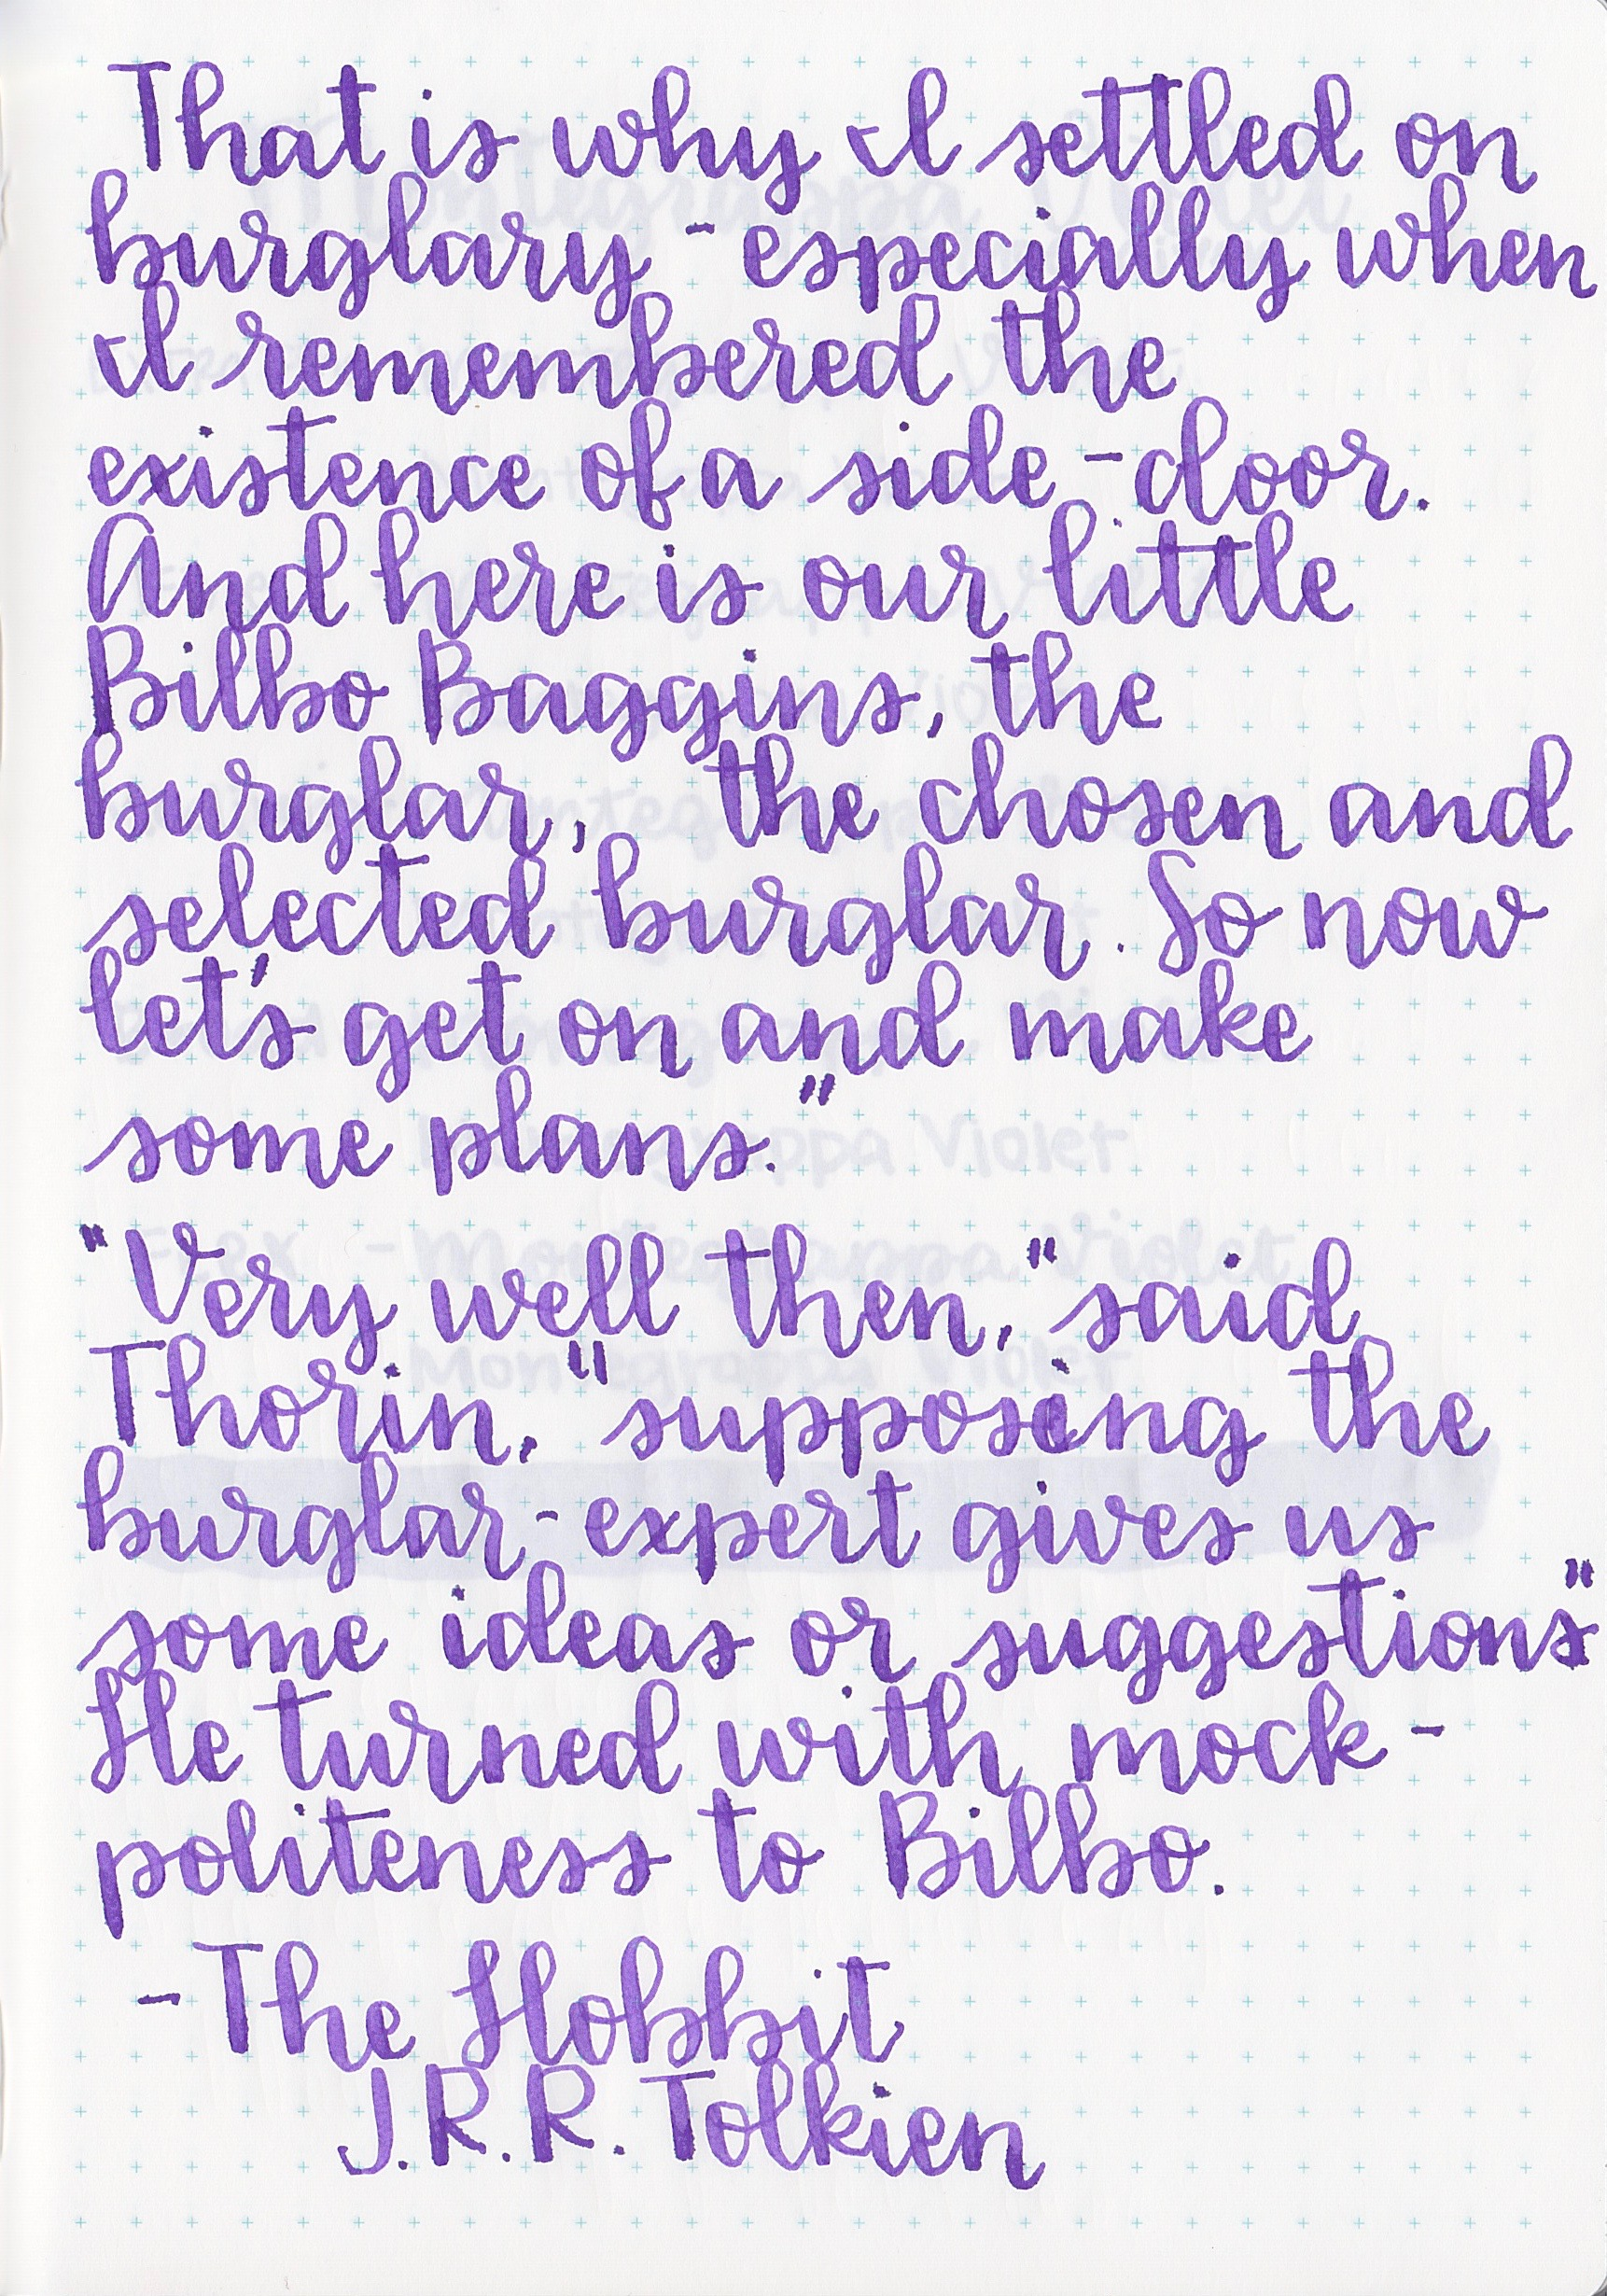 Longer writing: - I used a Pilot 912 FA on Tomoe River paper. The ink felt pretty wet to me.